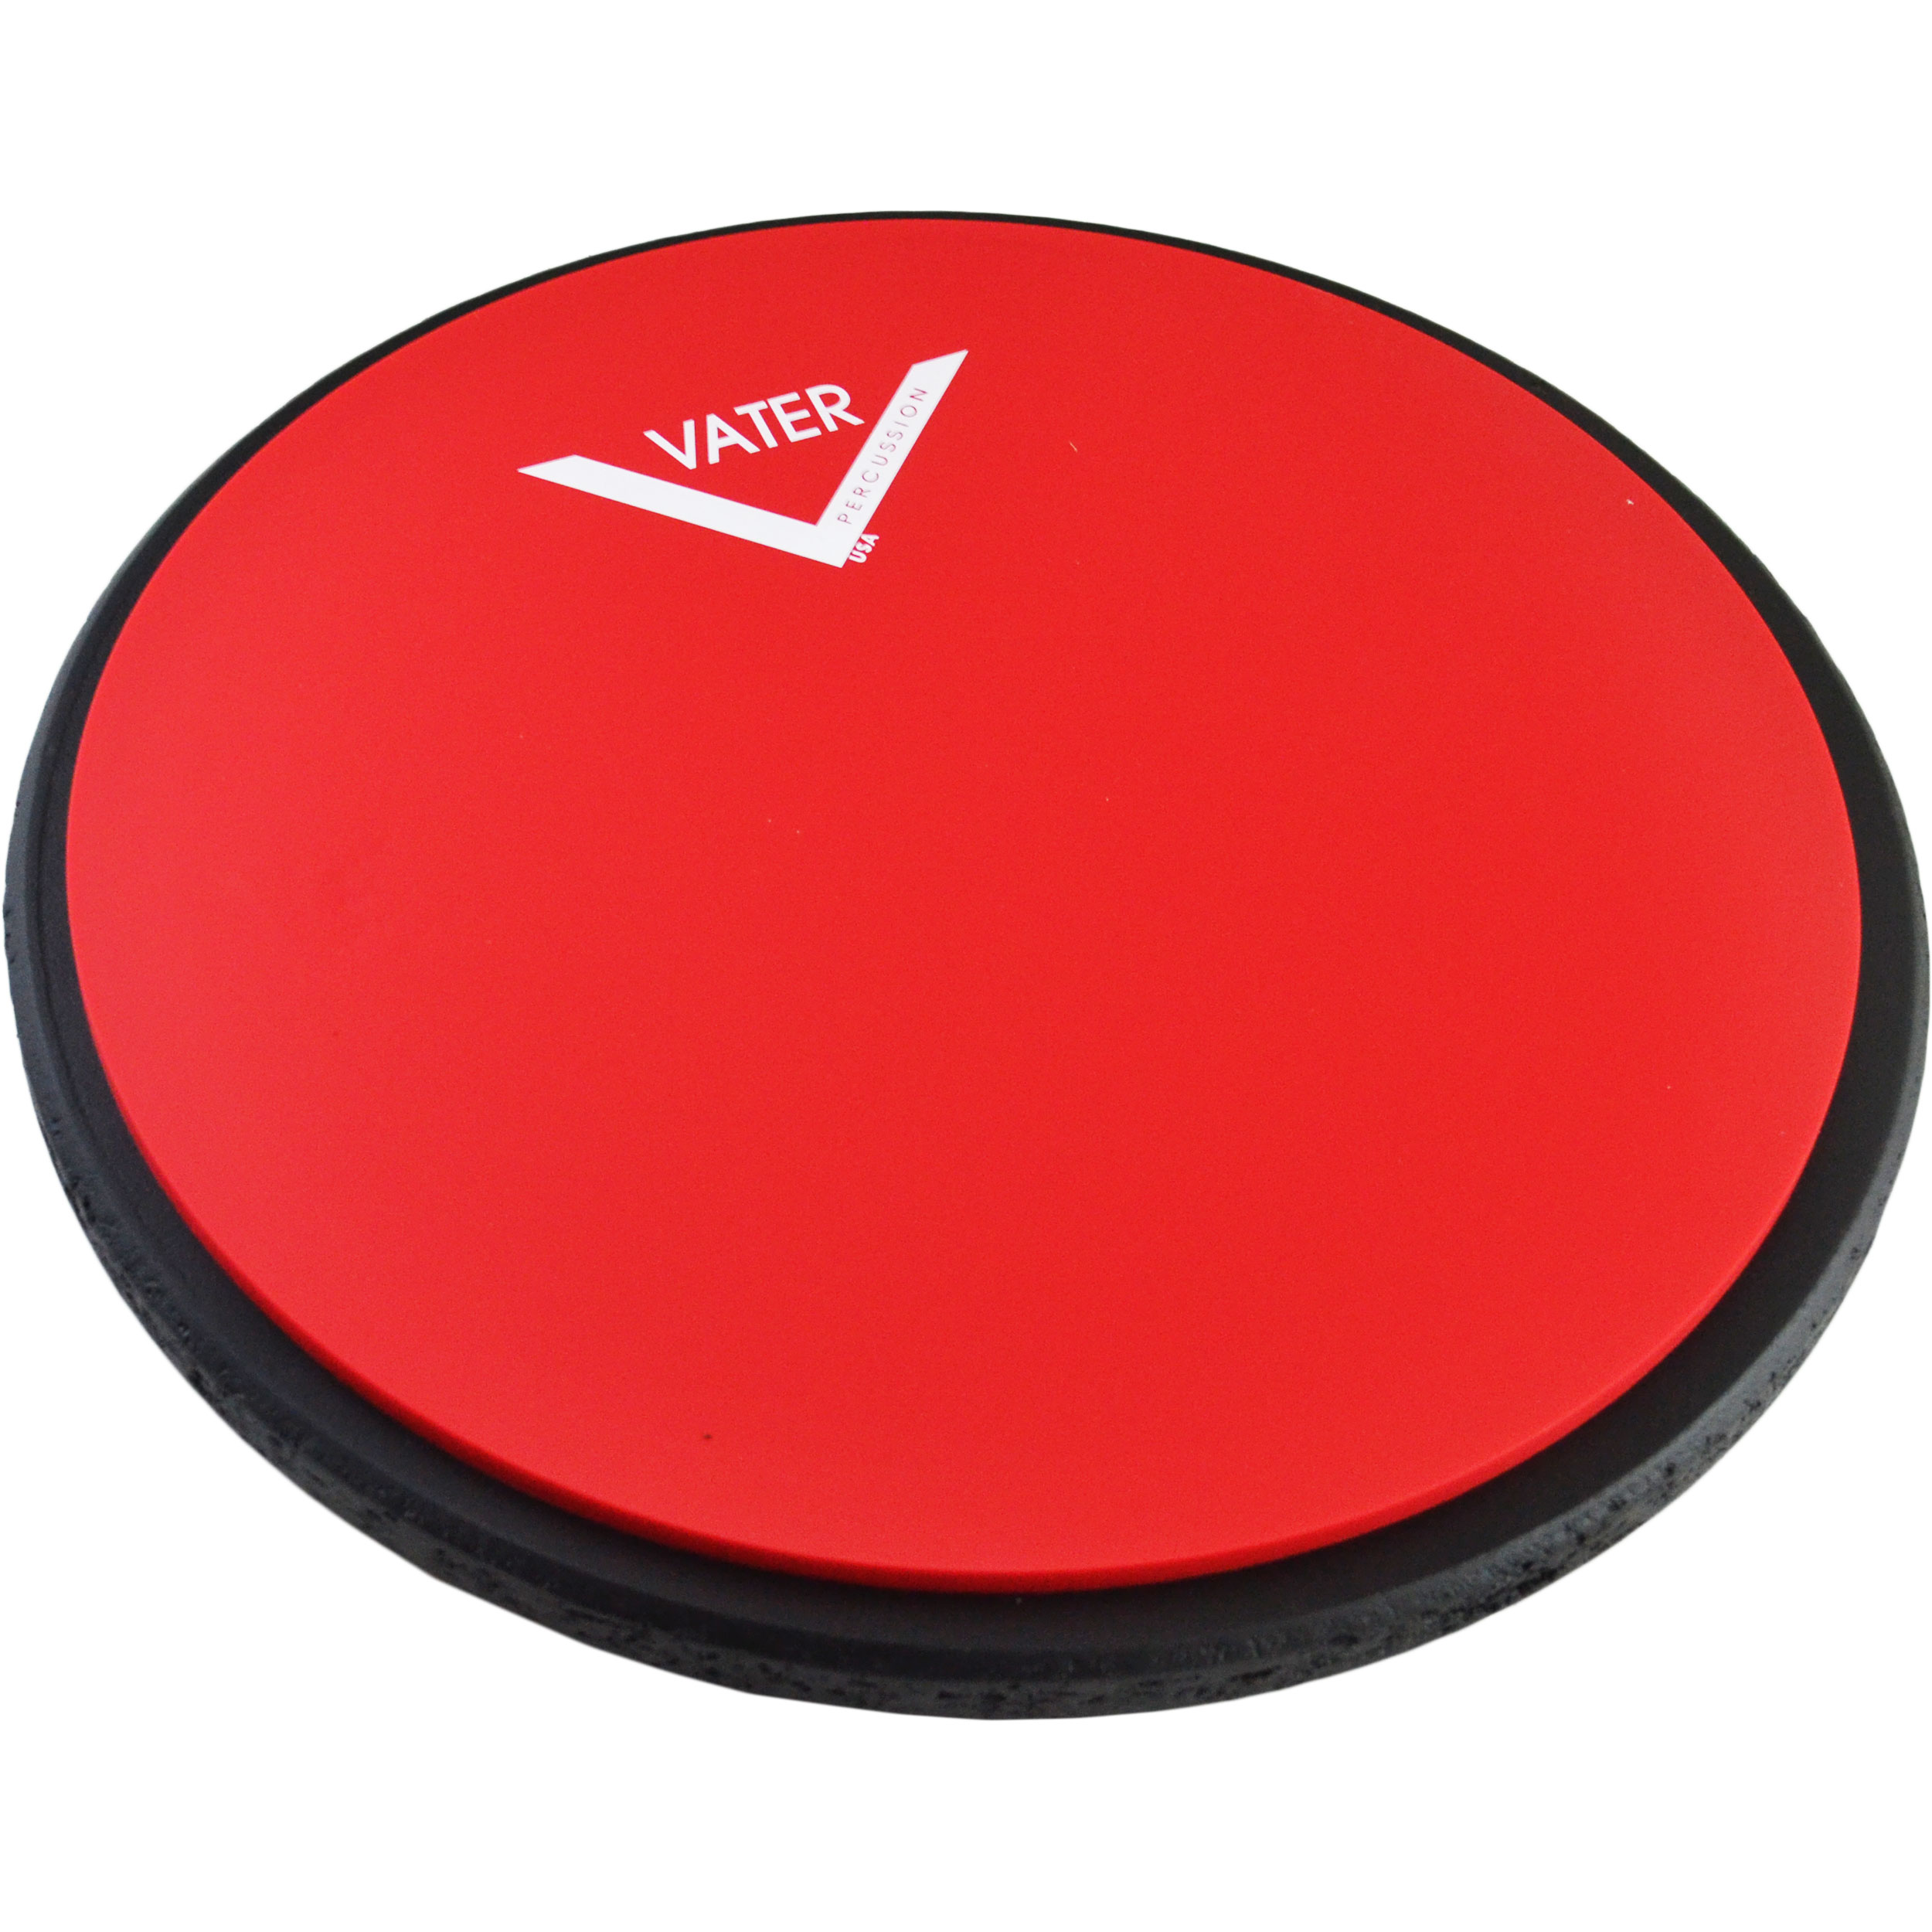 "Vater 12"" Double-Sided Practice Pad"